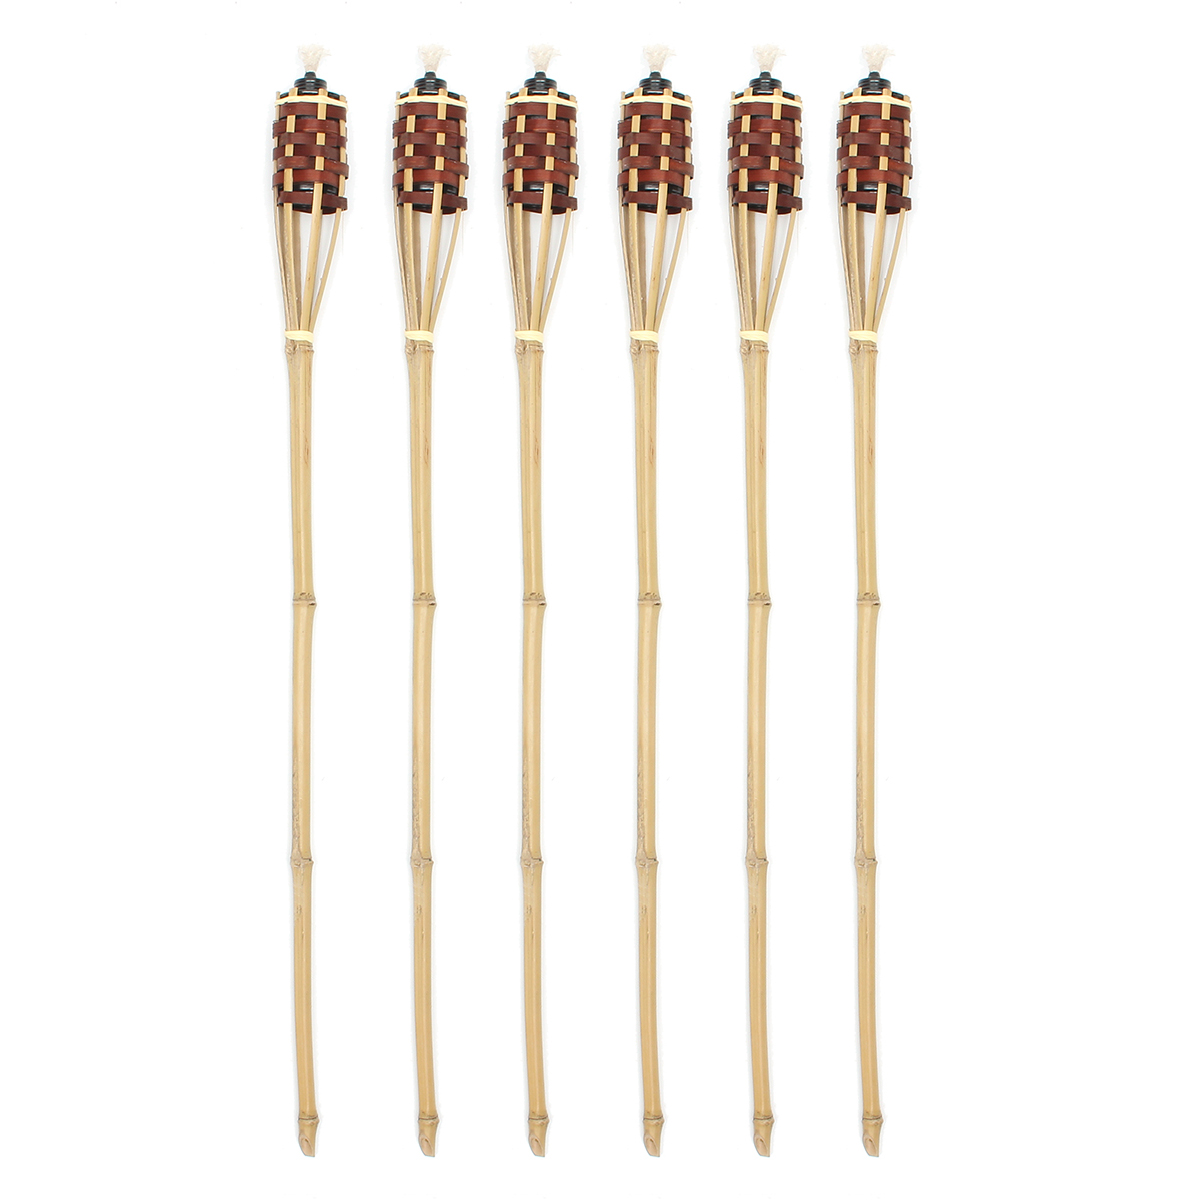 6Pcs Bamboo Tiki Torches Bamboo Covers 90cm Bamboo Torches Tools Kit